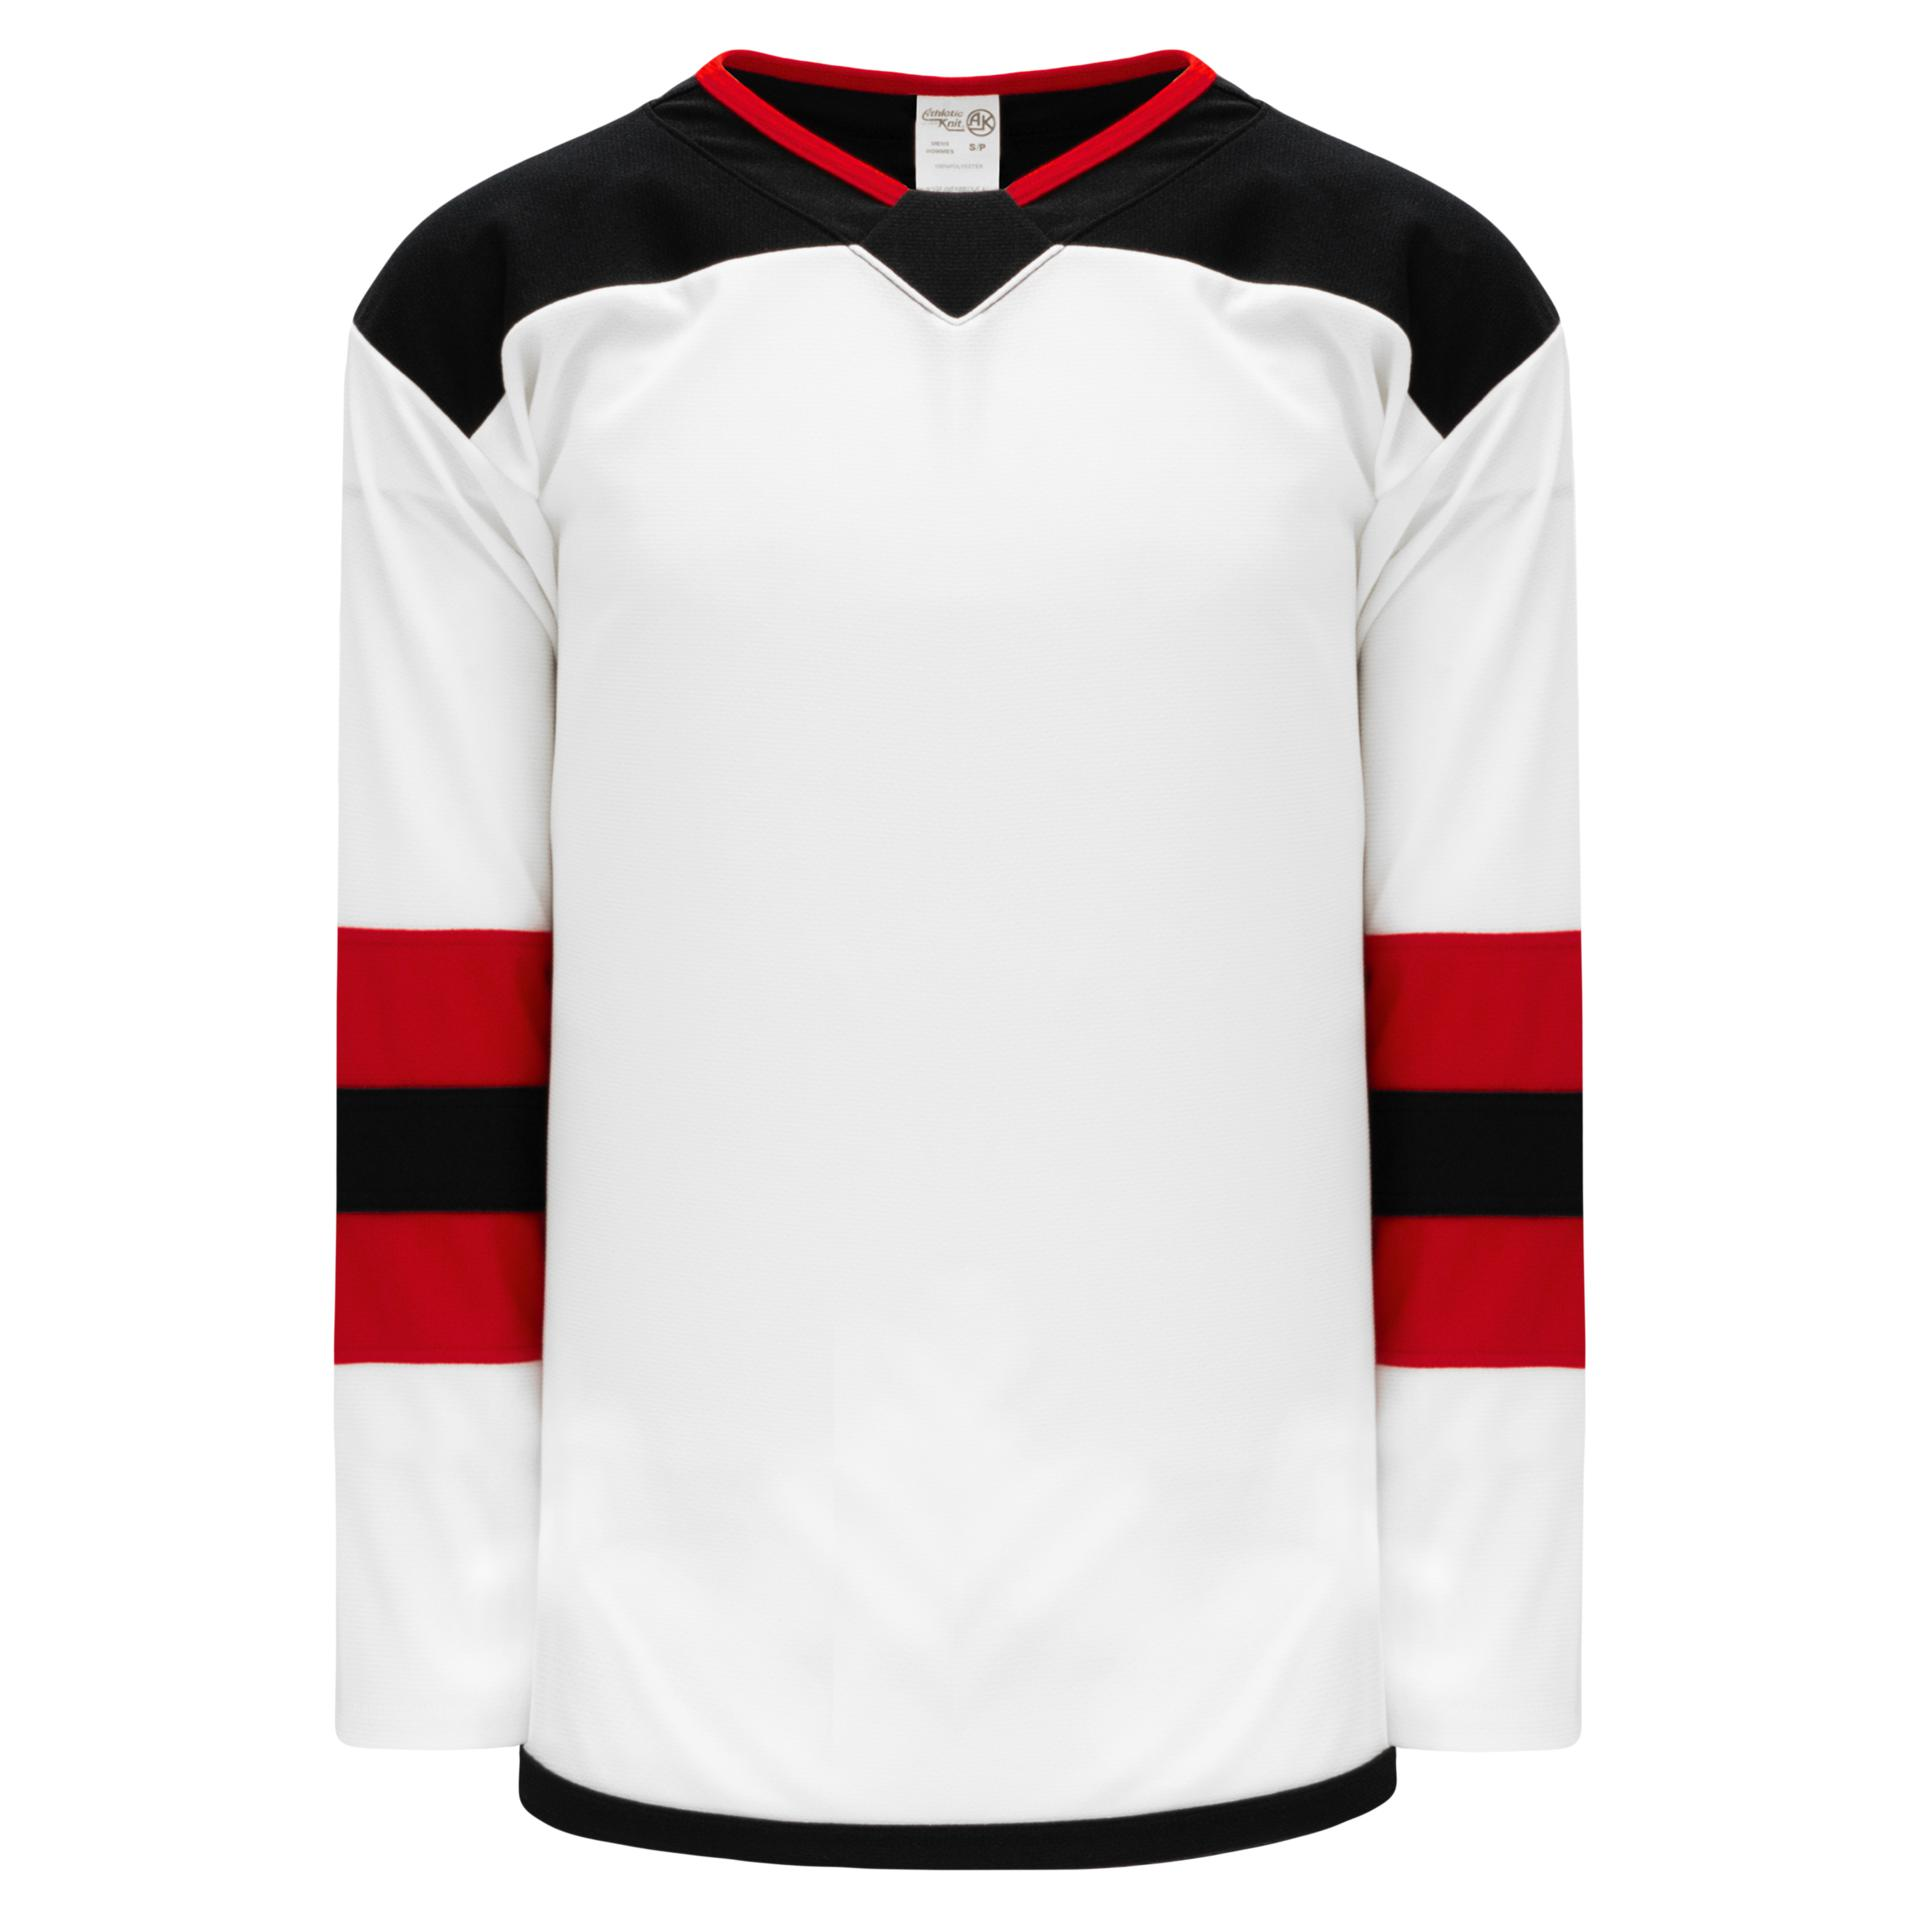 new styles 4236c cd217 H550B-NJE867B New Jersey Devils Blank Jerseys